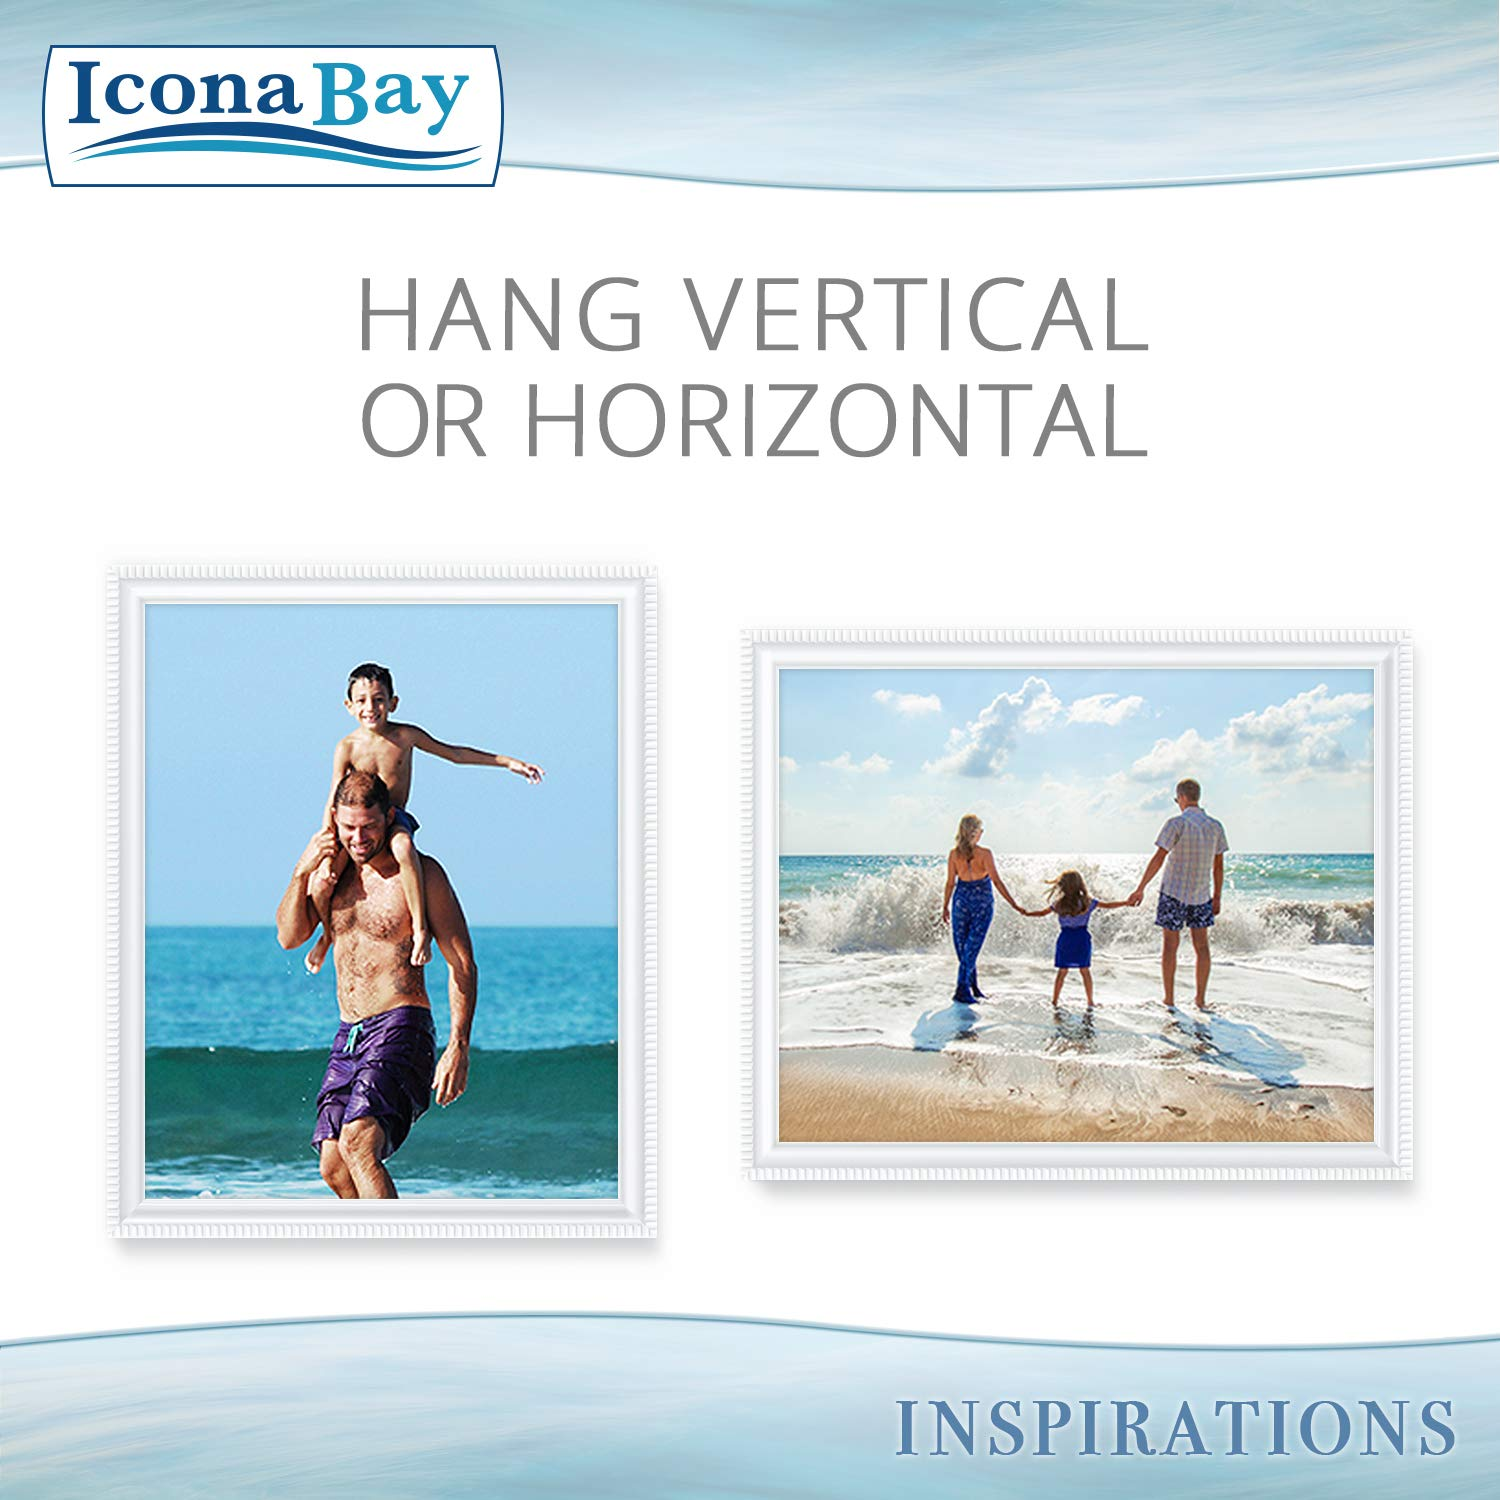 Icona Bay 8x10 Picture Frames (6 Pack, White) Picture Frame Set, Wall Mount or Table Top, Set of 6 Inspirations Collection by Icona Bay (Image #4)